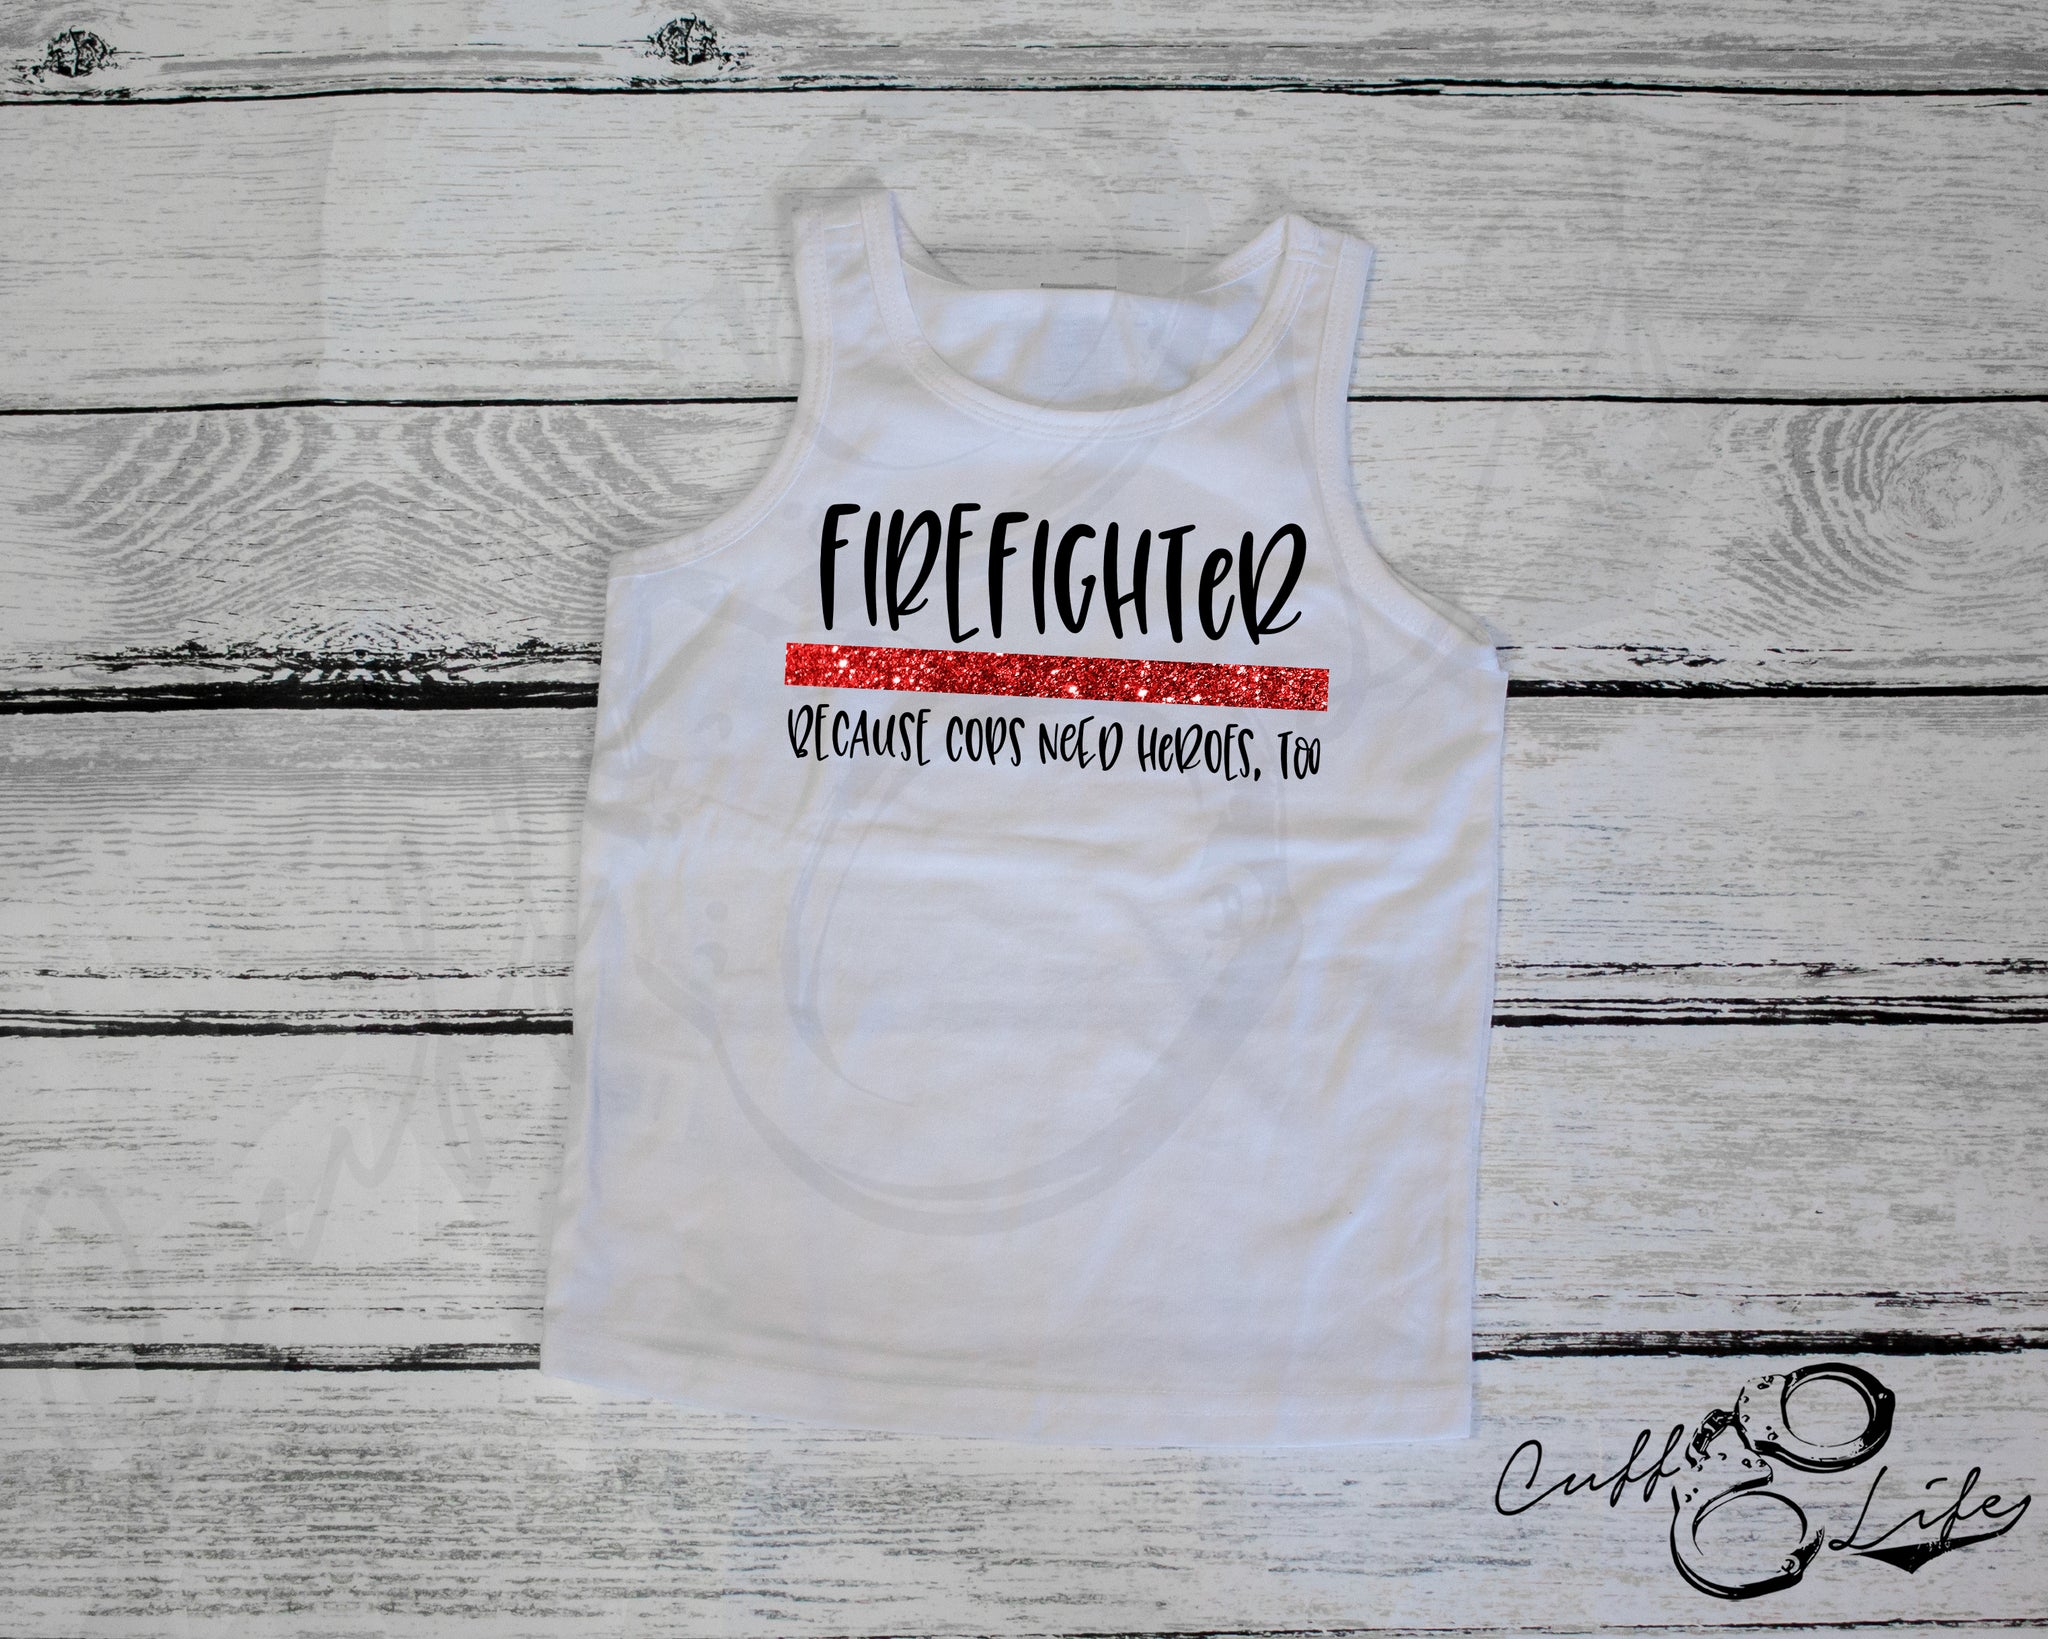 Firefighter Because Cops Need Heroes Too - Tank Top